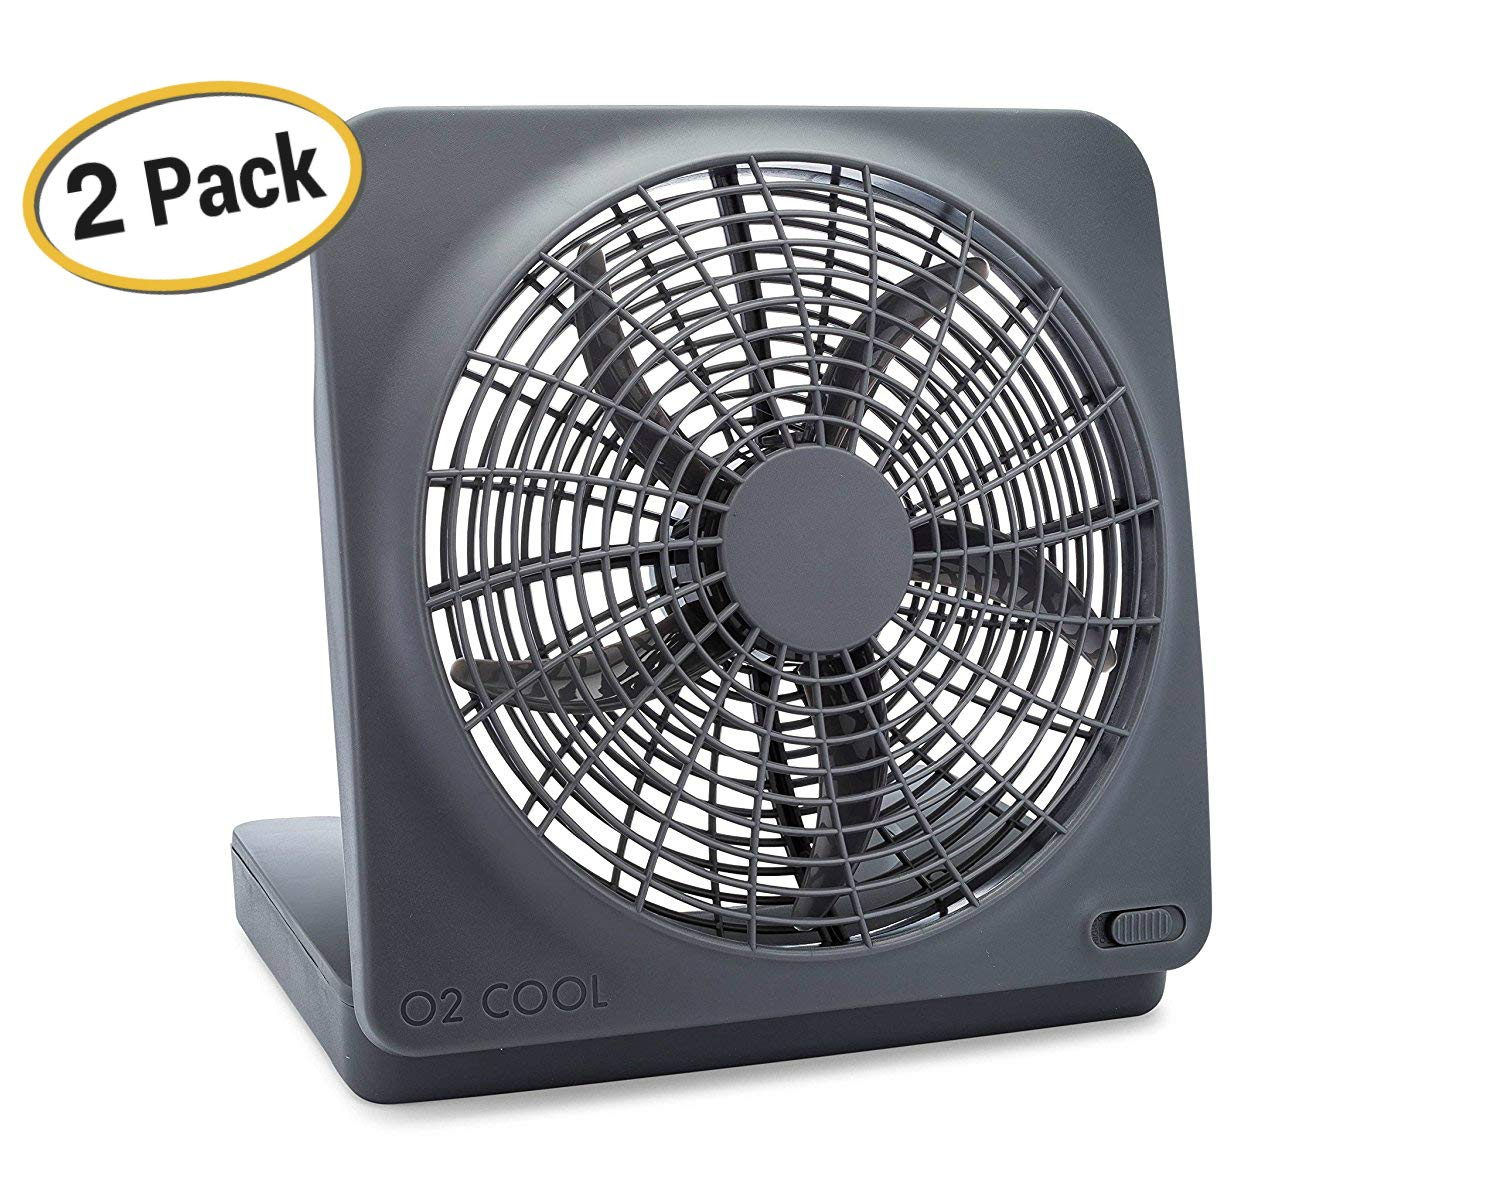 O2COOL 10-Inch Portable Desktop Air Circulation Battery Fan - 2 Speed - Compact Folding & Tilt Design - With AC Adapter, 2 Pack